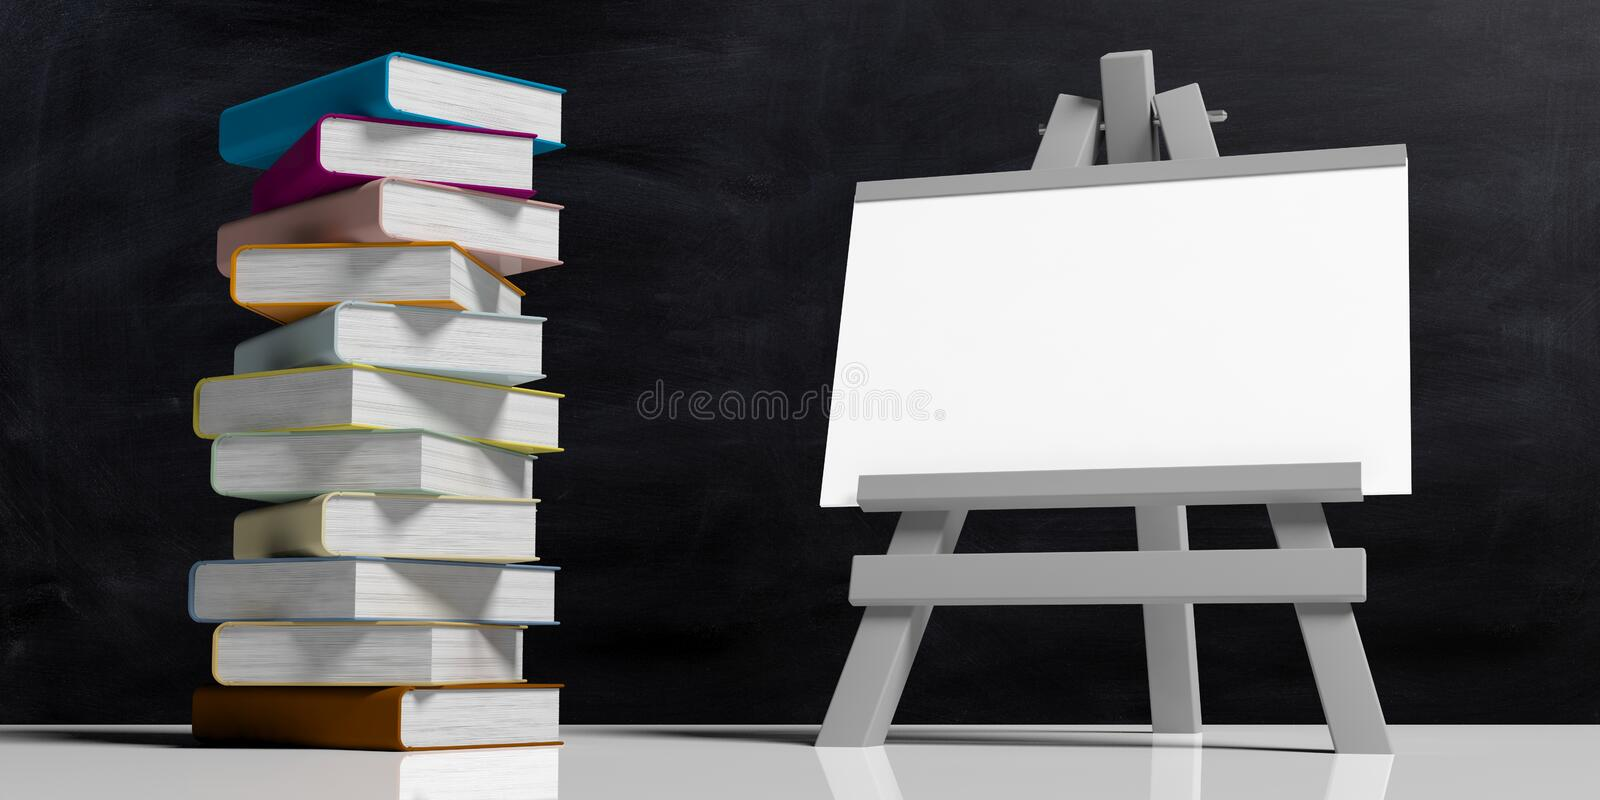 Education concept. Whiteboard on folding wooden easel, isolated against black background and a pile of colorful books, 3d stock illustration